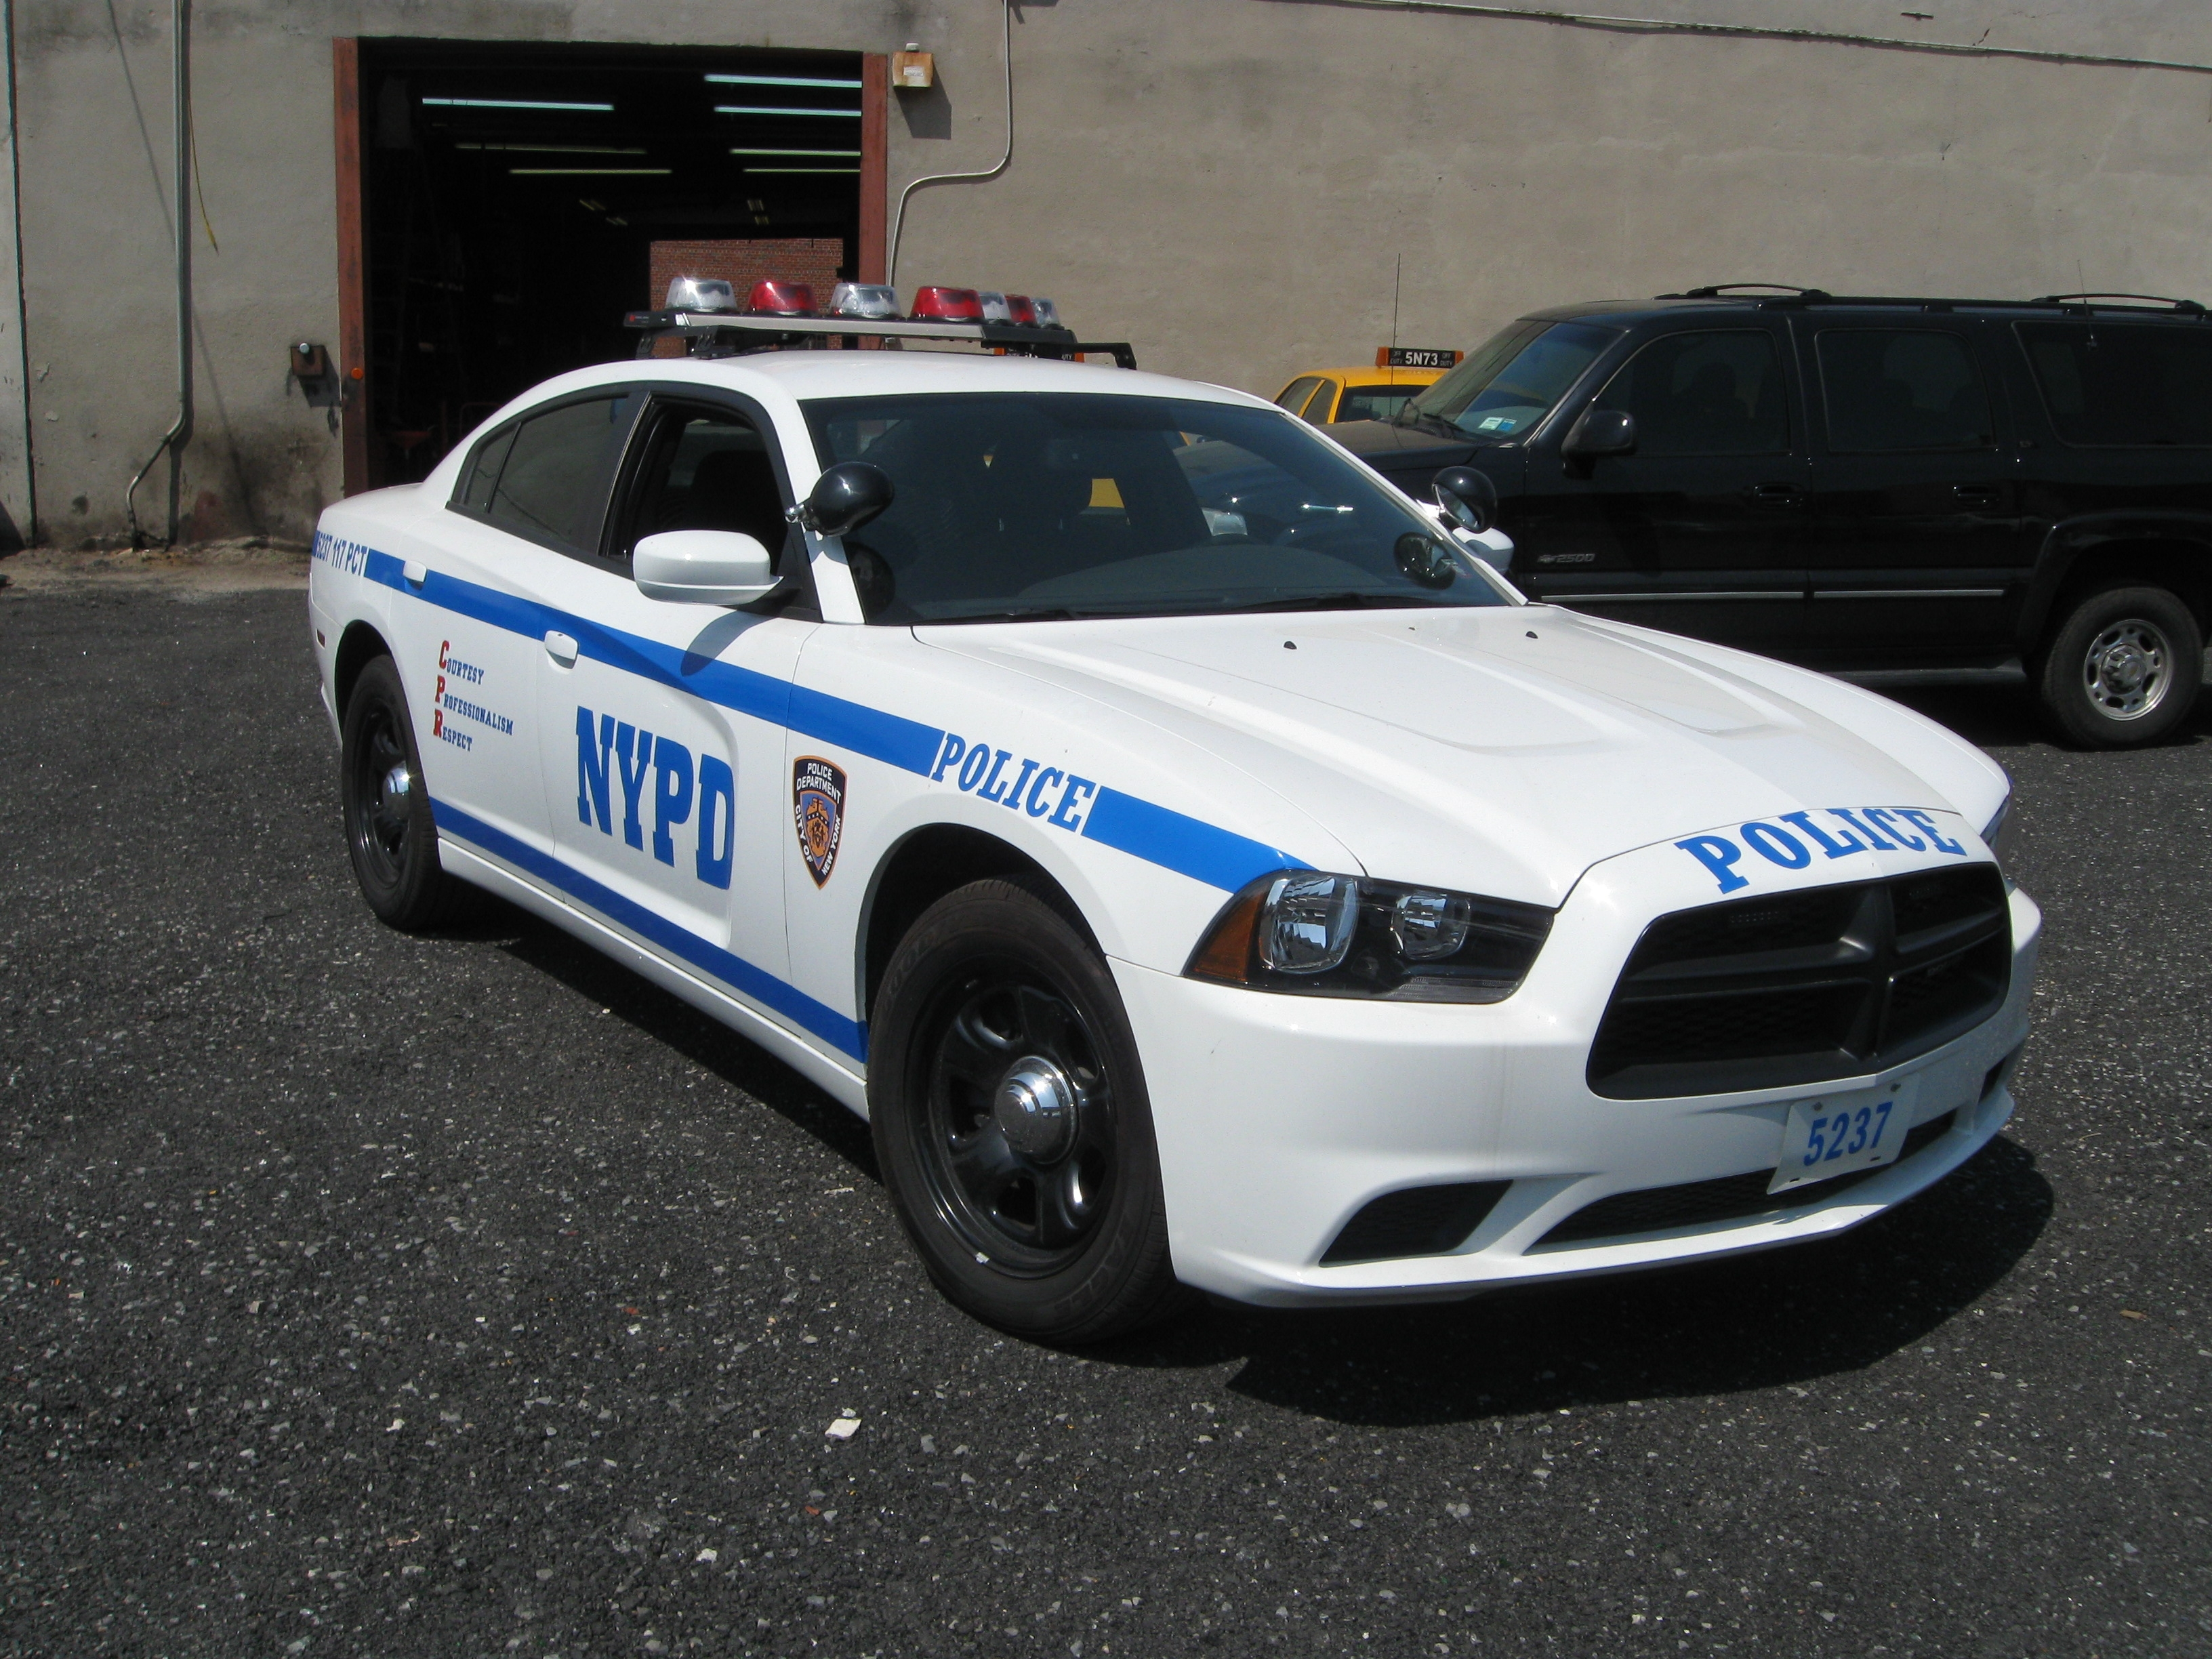 Picture Cars Advanced Search 1964 Dodge Police Car 2012 Charger